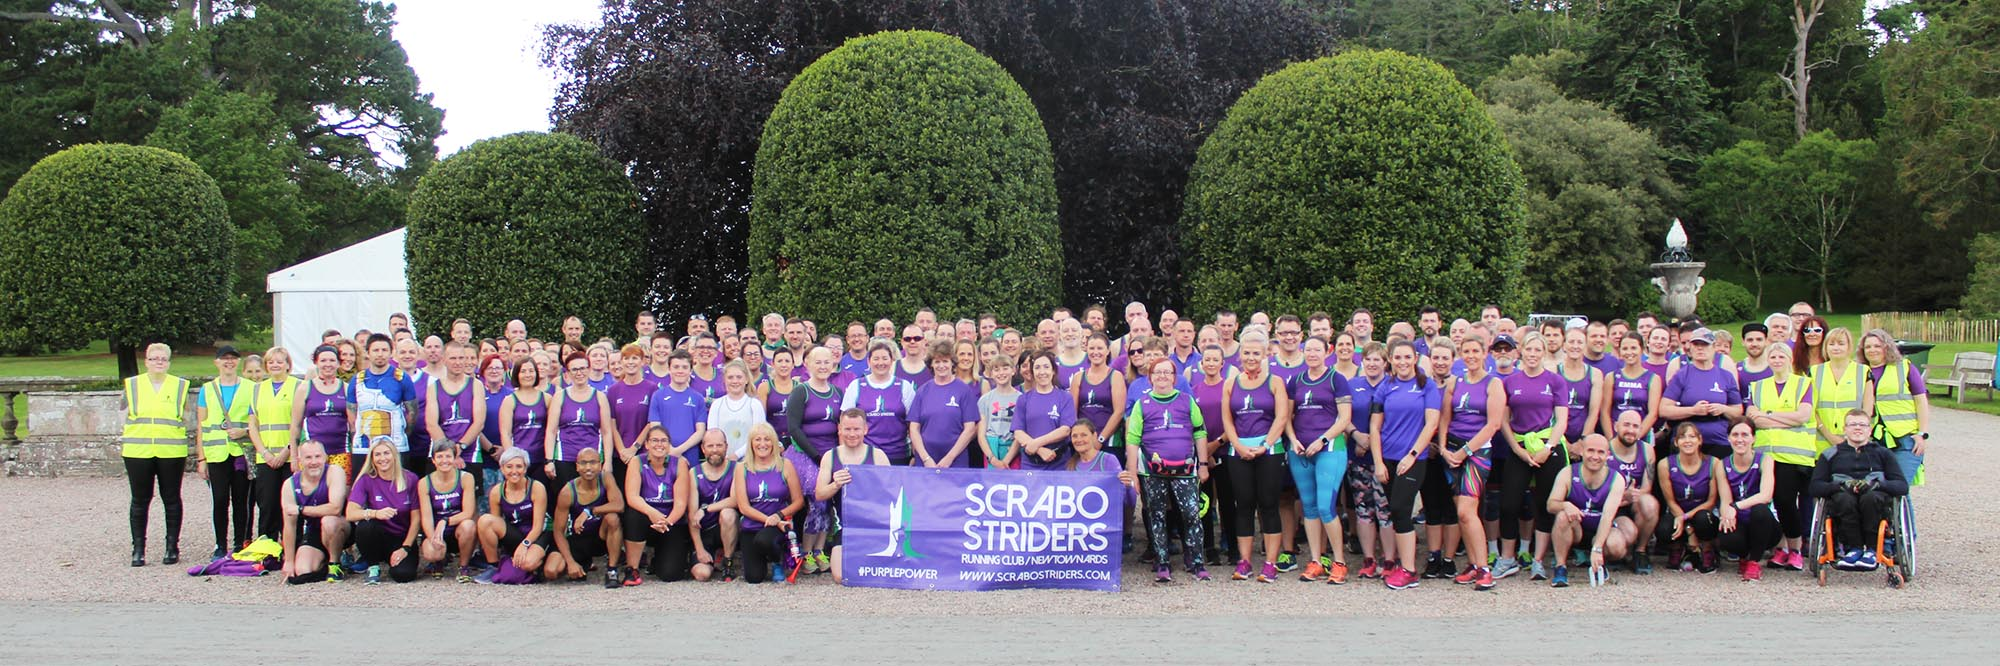 Scrabo Striders Running Club marked their 3rd anniversary with a private race in the beautiful grounds of Mount Stewart.